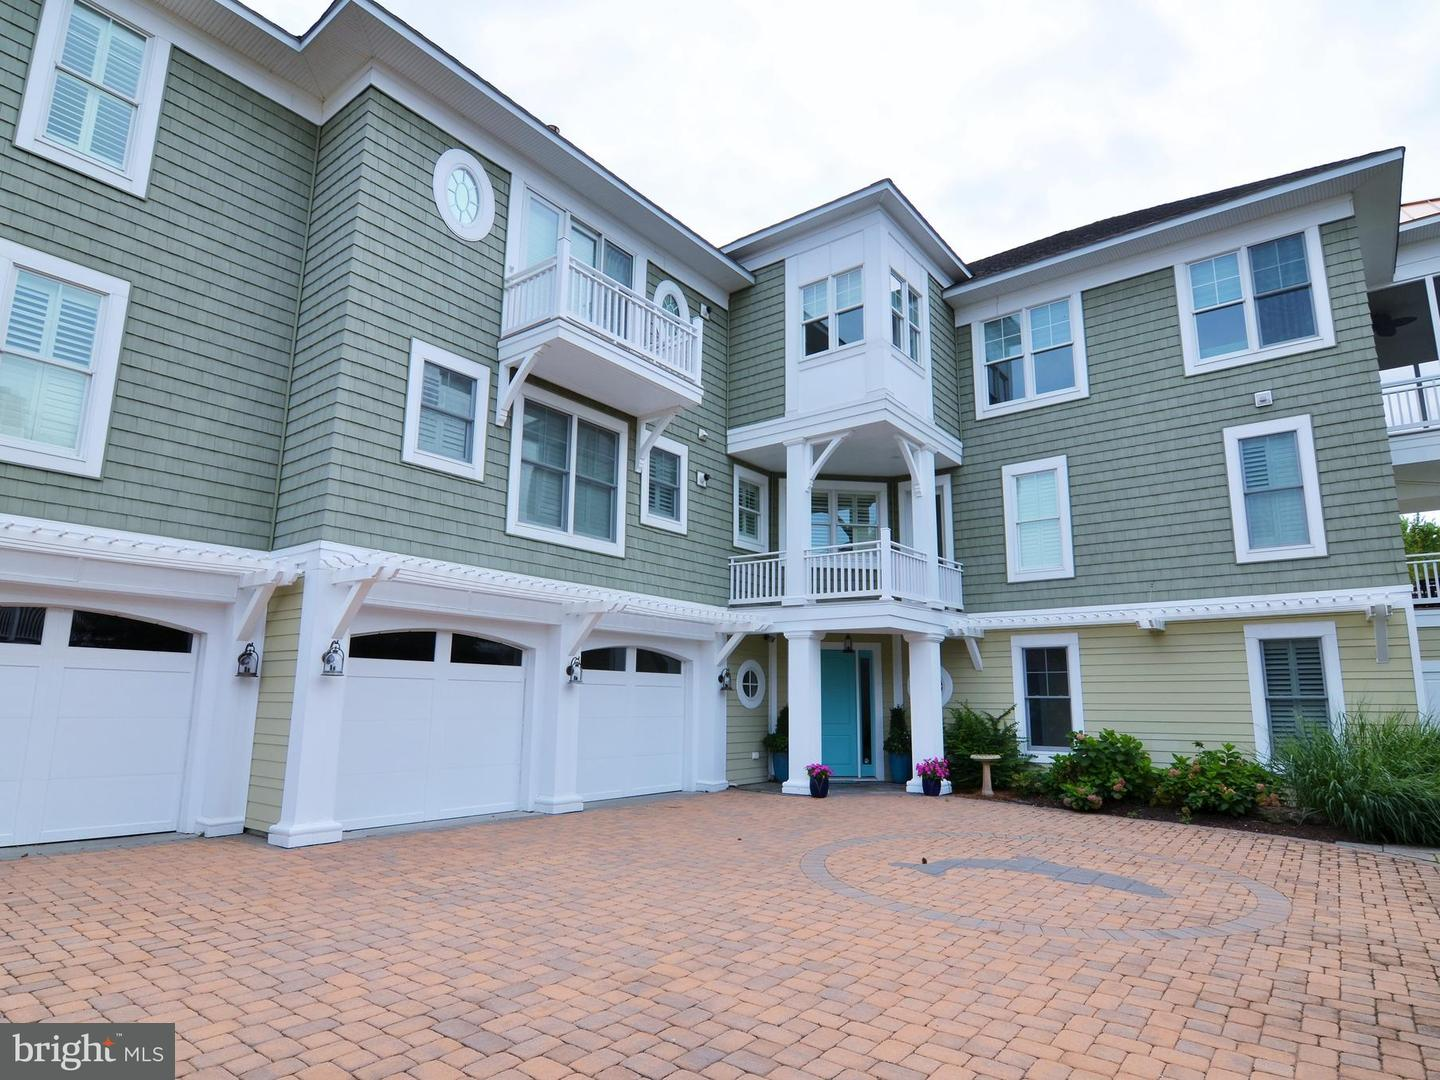 1002293530-300500805784-2018-09-25-15-08-24 31 Hall Ave | Rehoboth Beach, De Real Estate For Sale | MLS# 1002293530  - Suzanne Macnab